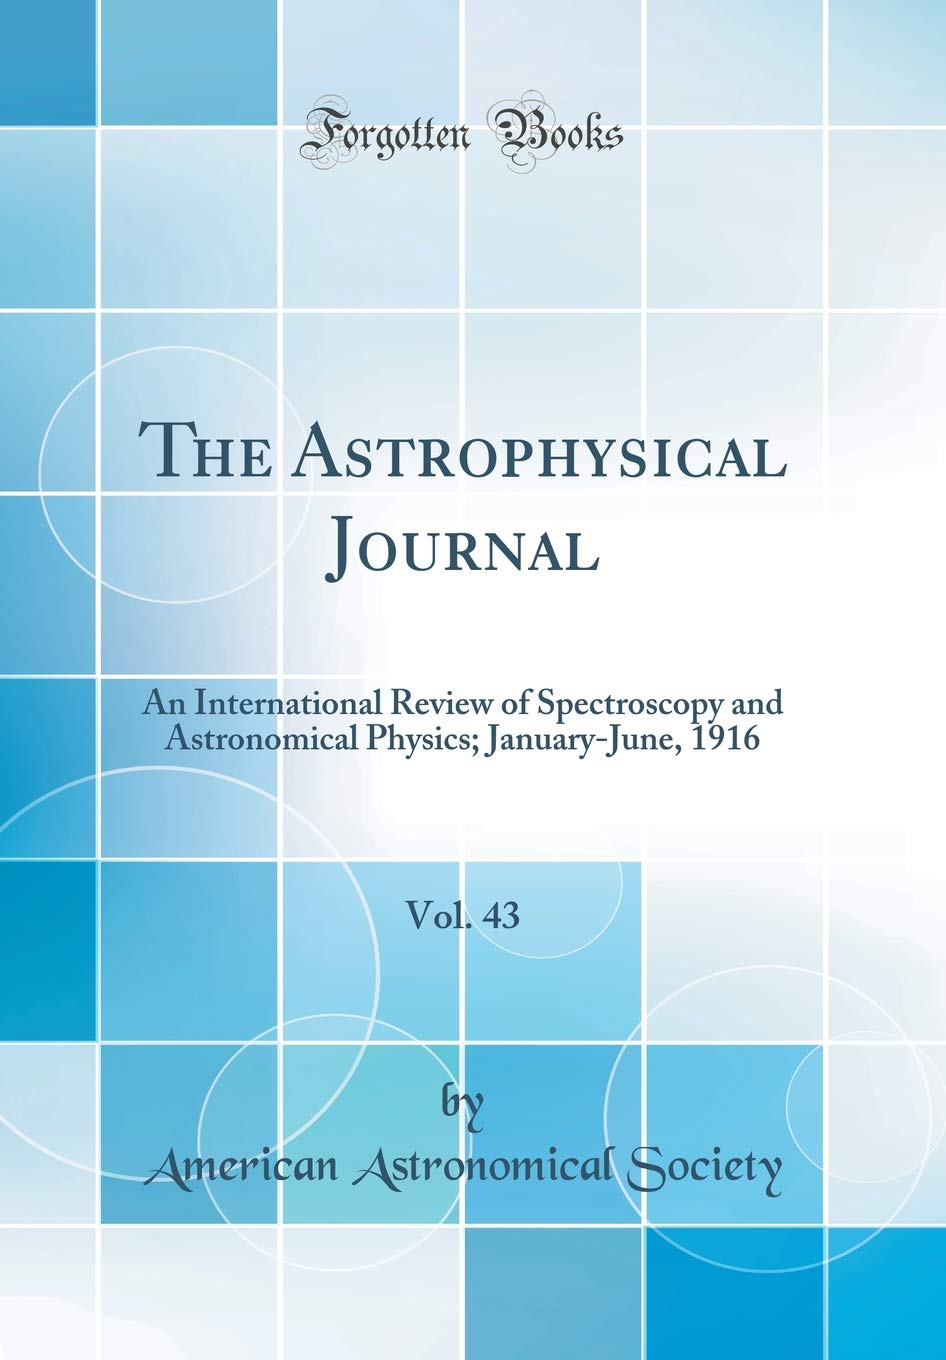 The Astrophysical Journal, Vol. 43: An International Review of Spectroscopy and Astronomical Physics; January-June, 1916 (Classic Reprint) PDF